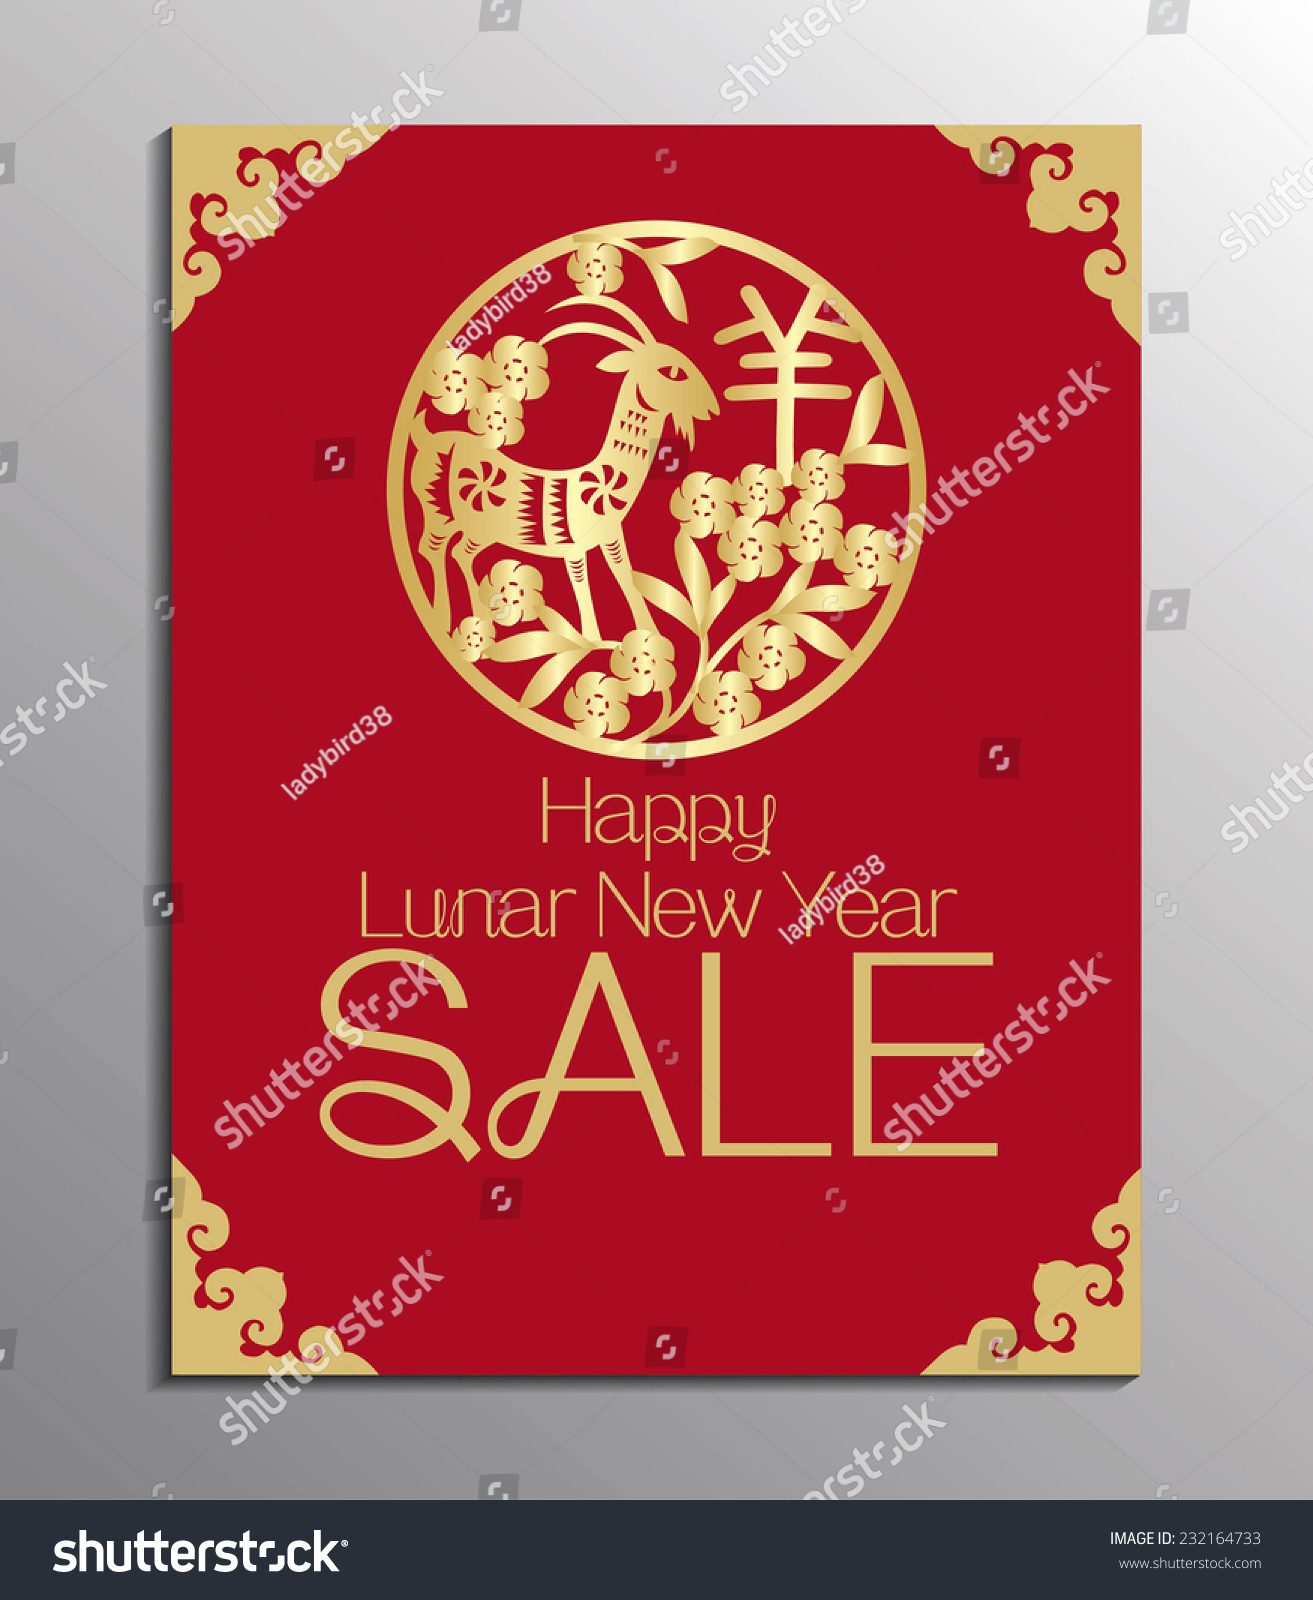 chinese new year sale design template のベクター画像素材